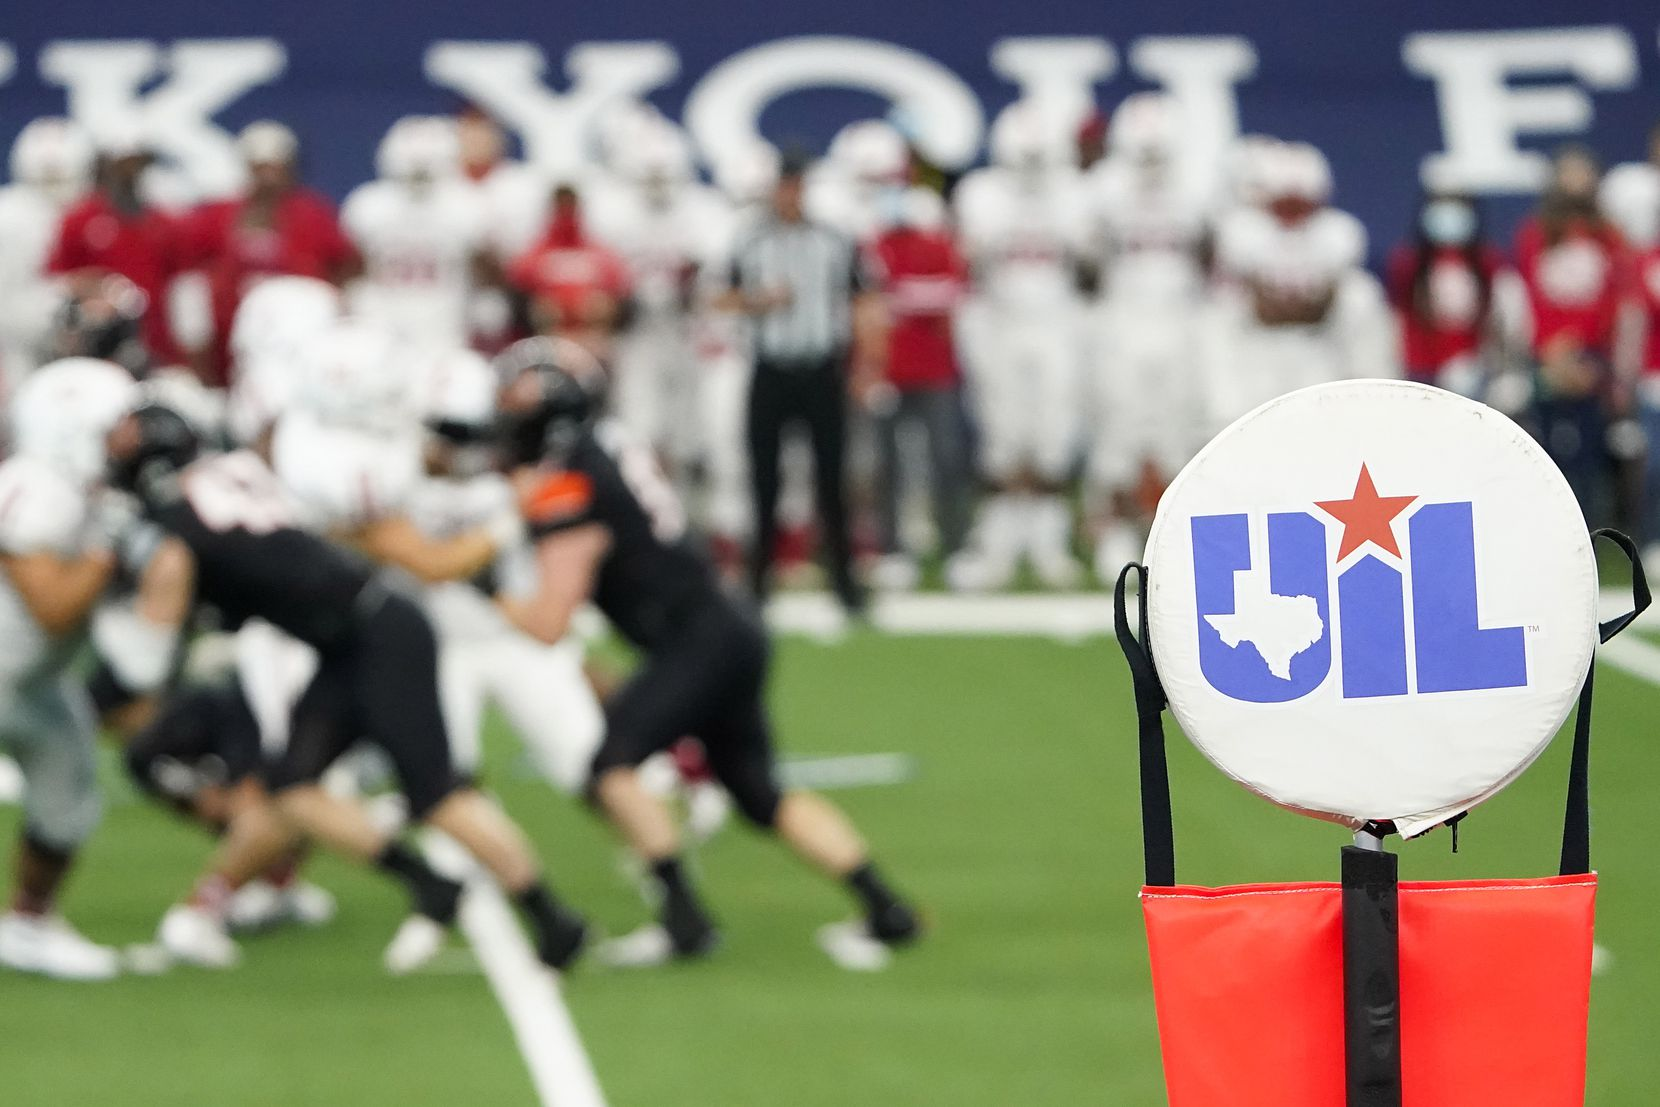 Aledo faces Crosby during the first half of the Class 5A Division II state football championship game at AT&T Stadium on Friday, Jan. 15, 2021, in Arlington. (Smiley N. Pool/The Dallas Morning News)